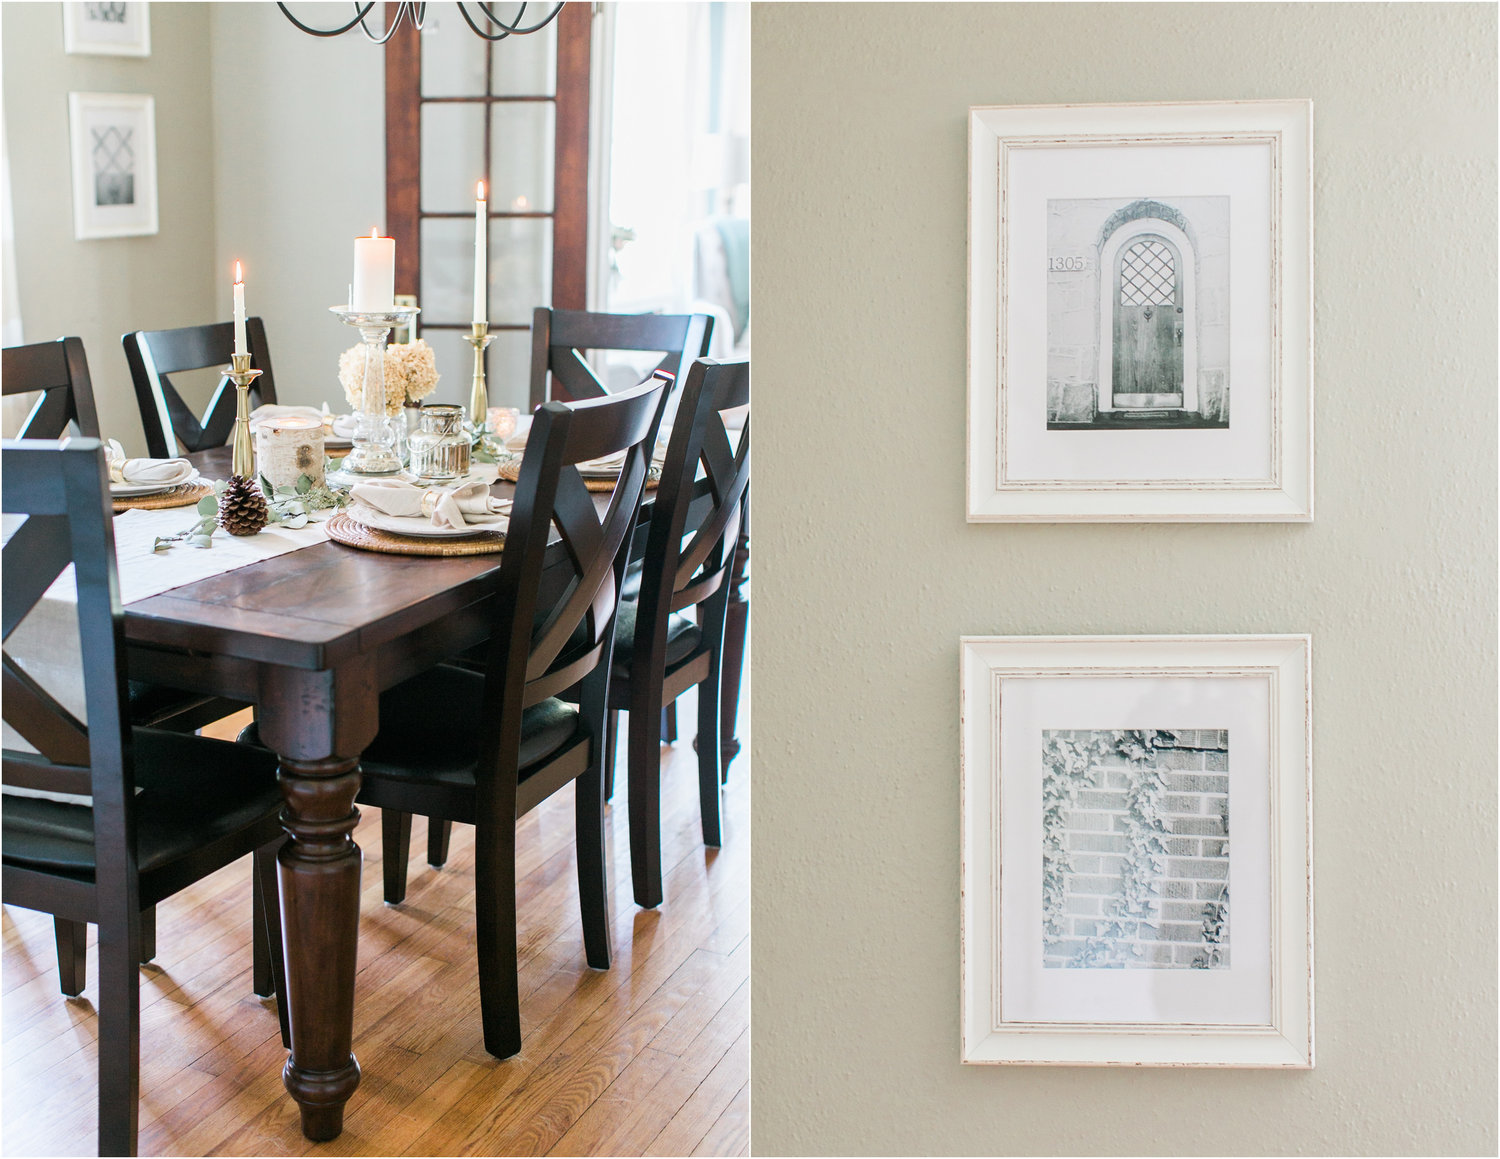 Kitchen Curtains Pottery Barn The Nichols Cottage Dining Room Jessi Nichols Photography